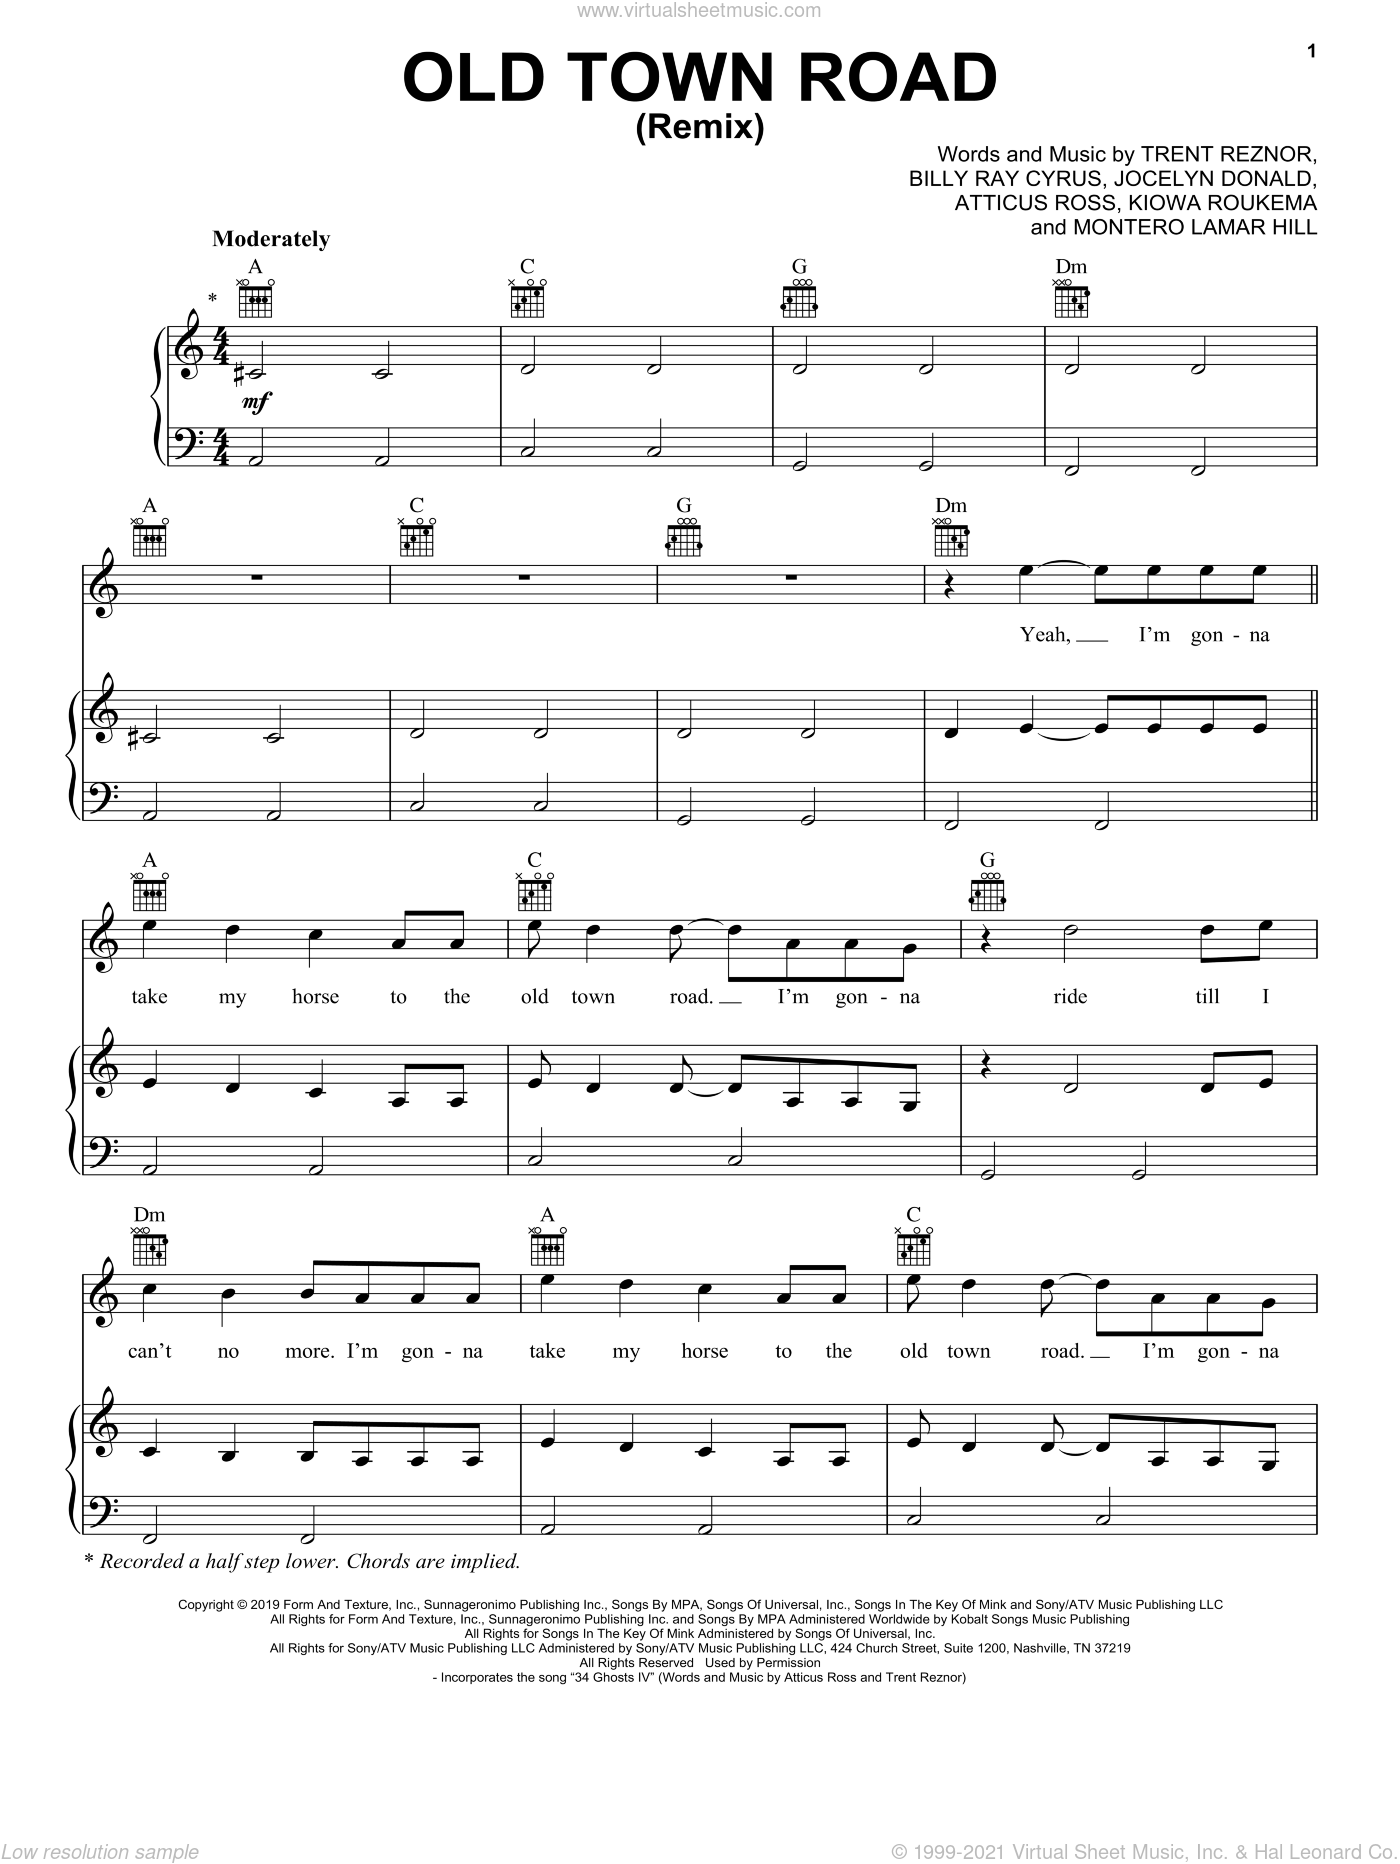 Old Town Road (Remix) sheet music for voice, piano or guitar by Lil Nas X feat. Billy Ray Cyrus, Atticus Ross, Billy Ray Cyrus, Jocelyn Donald, Kiowa Roukema, Montero Lamar Hill and Trent Reznor, intermediate skill level